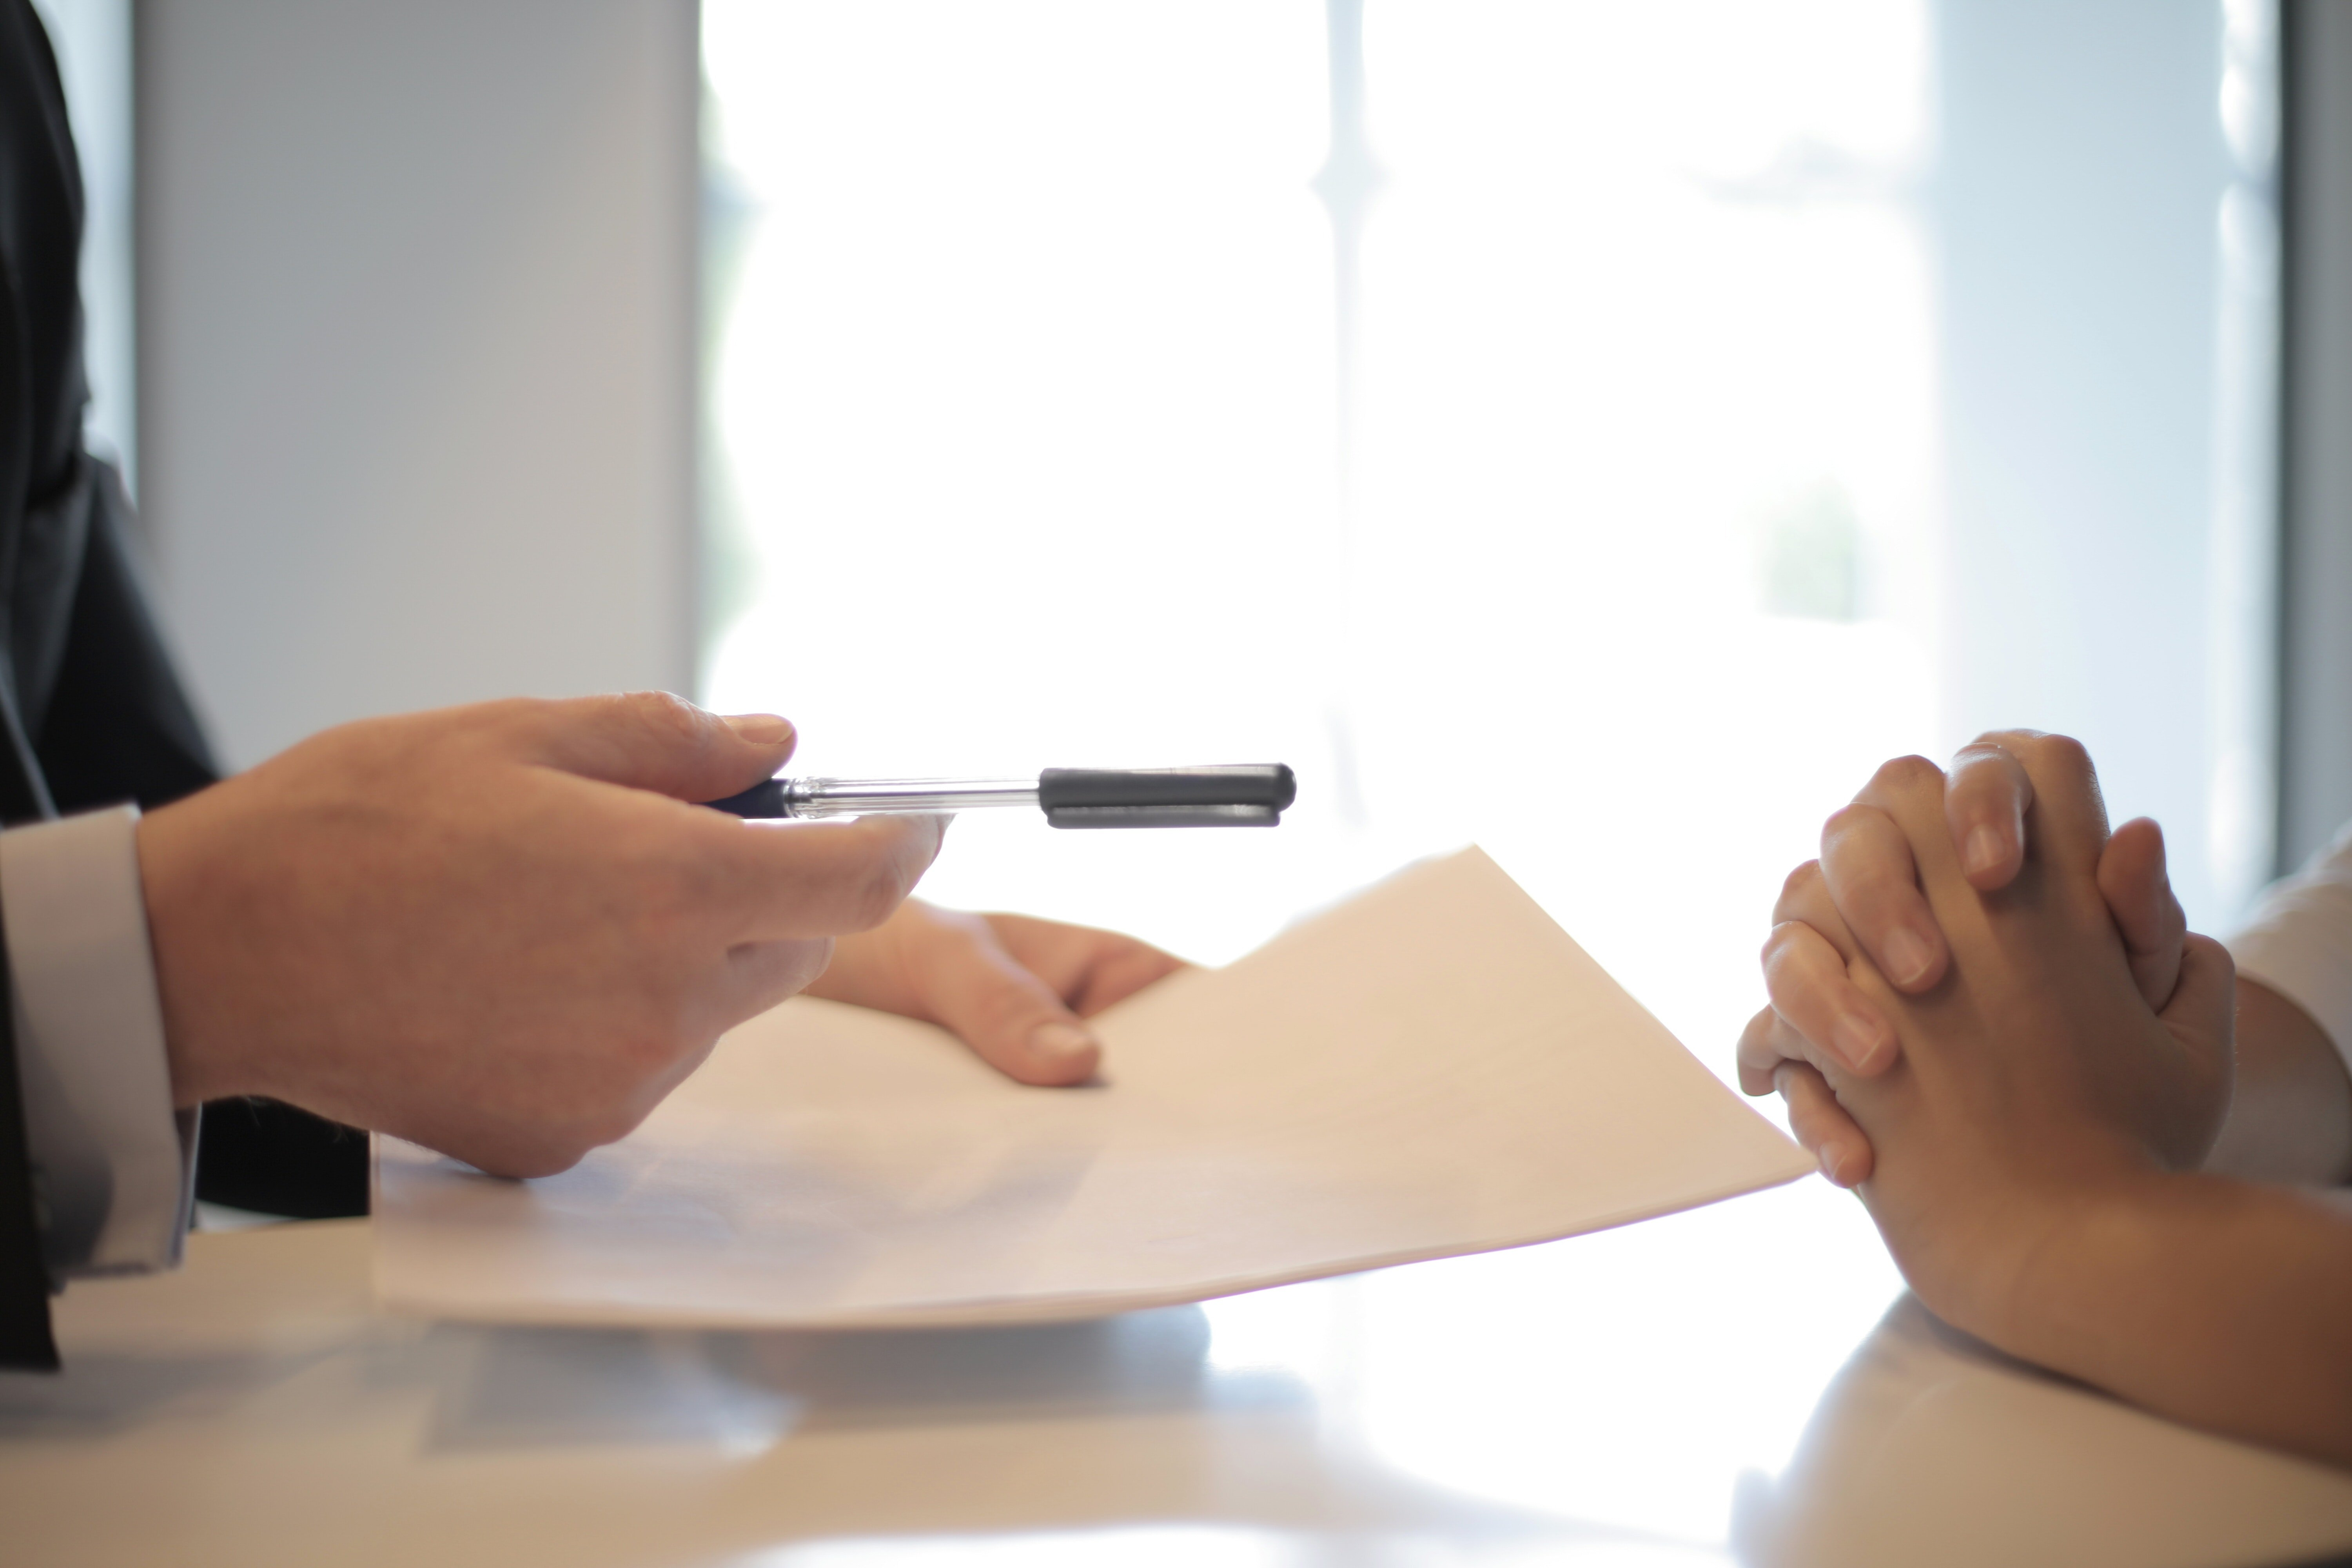 I found a courier on my porch holding some documents for me to sign | Source: Pexels